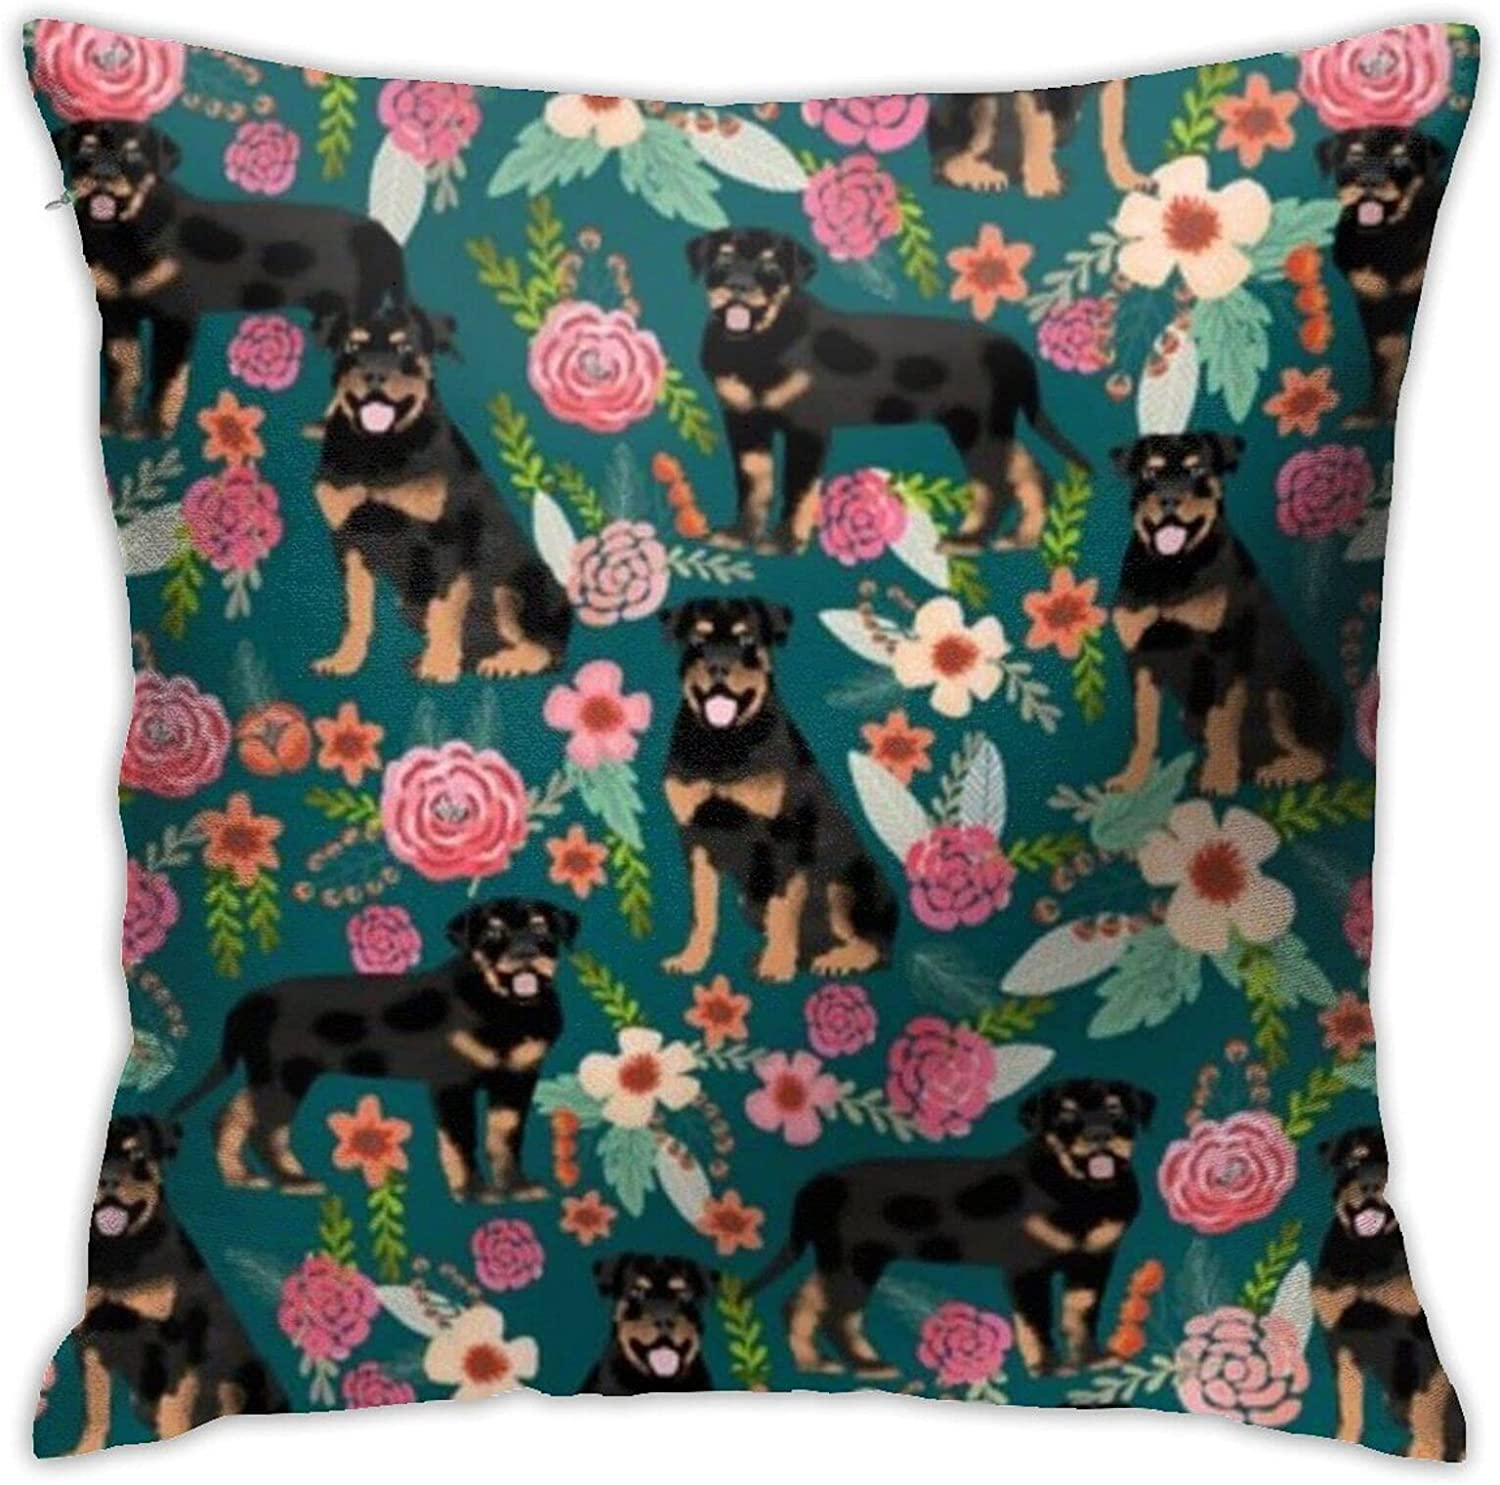 Rottweiler Floral Dog 18 X Inches Bed Design Couch and shopping Cute Max 43% OFF P